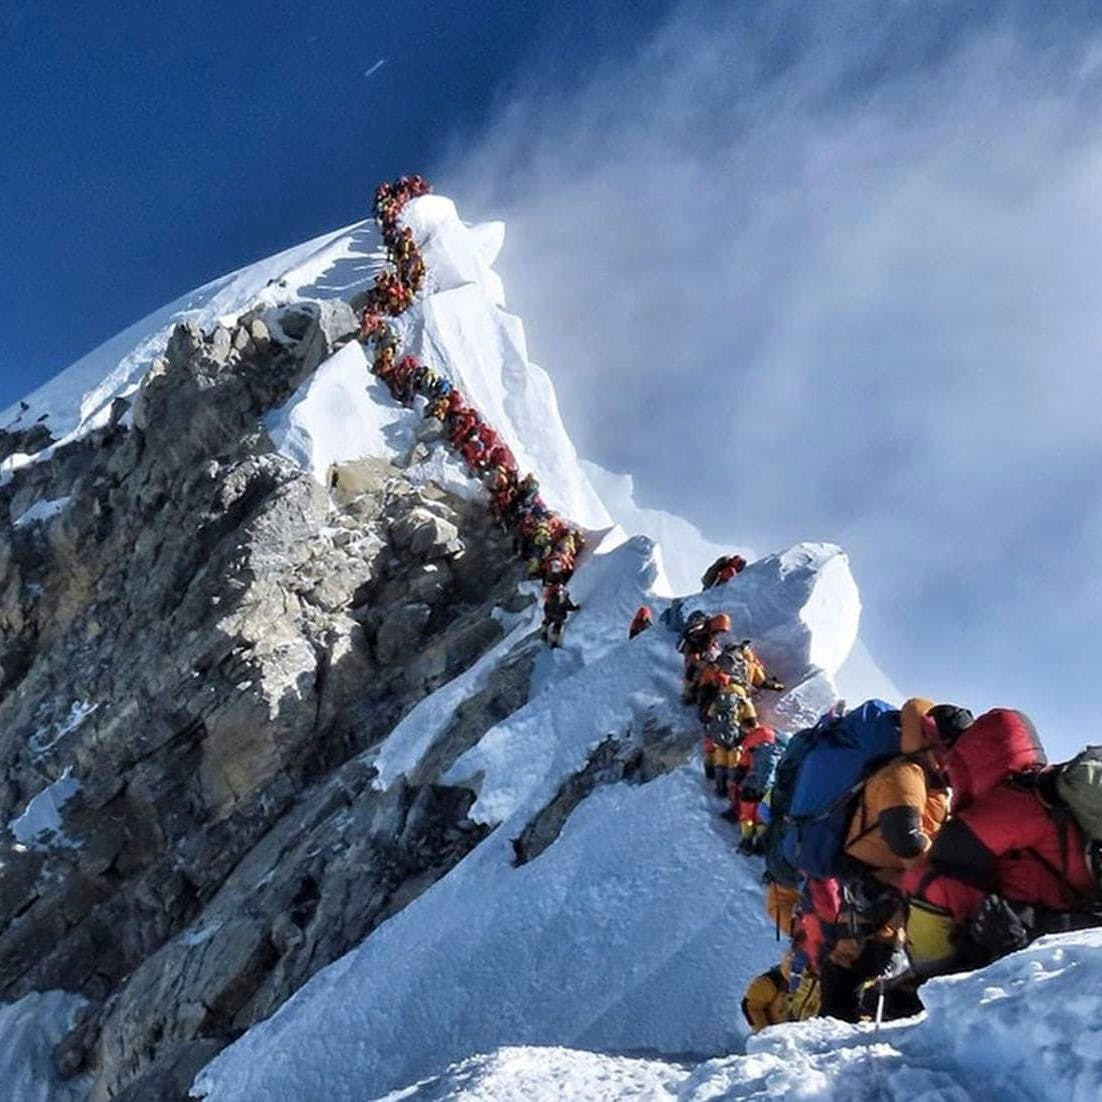 A dangerously long queue of climbers at the summit of Mount Everest. This is definitely not responsible travel!